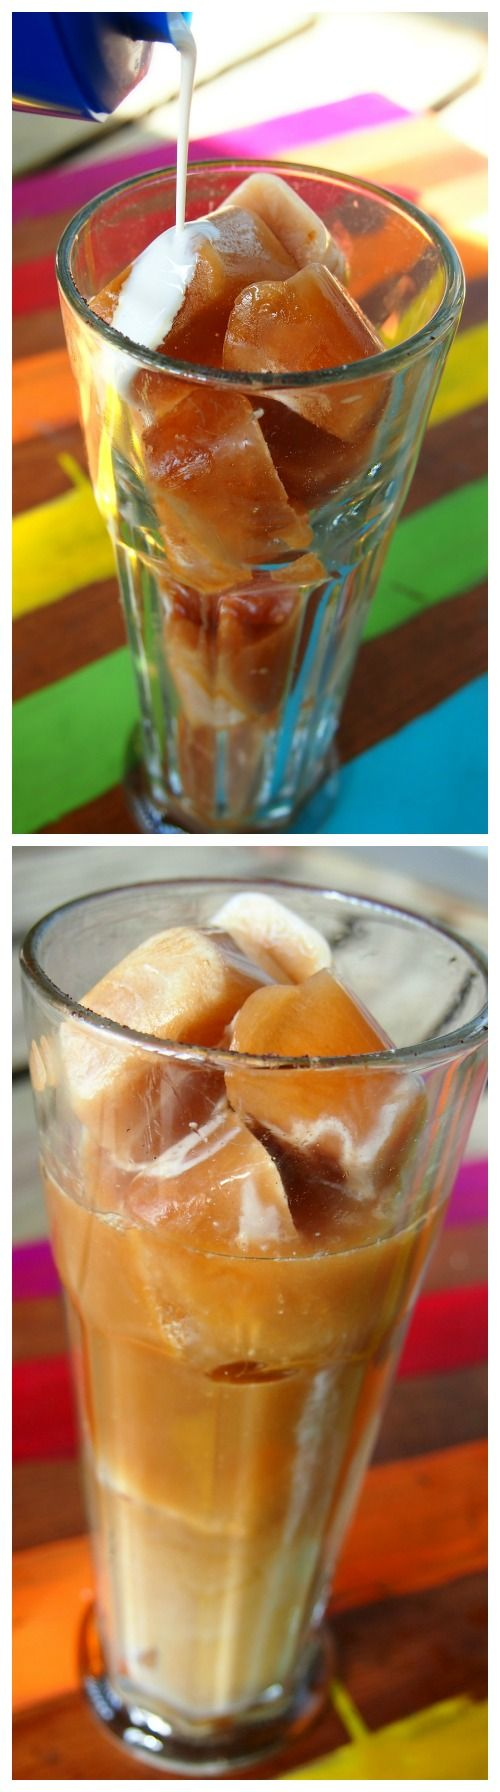 30 Calorie French Vanilla Iced Coffee With Coffee Cubes!: Coffee Cubes, Ice Cubes, Coffee Coffee Coffee, Ice Coffee, French Vanilla, Iced Coffee, Calories French, Vanilla Ice, Coffee Ice